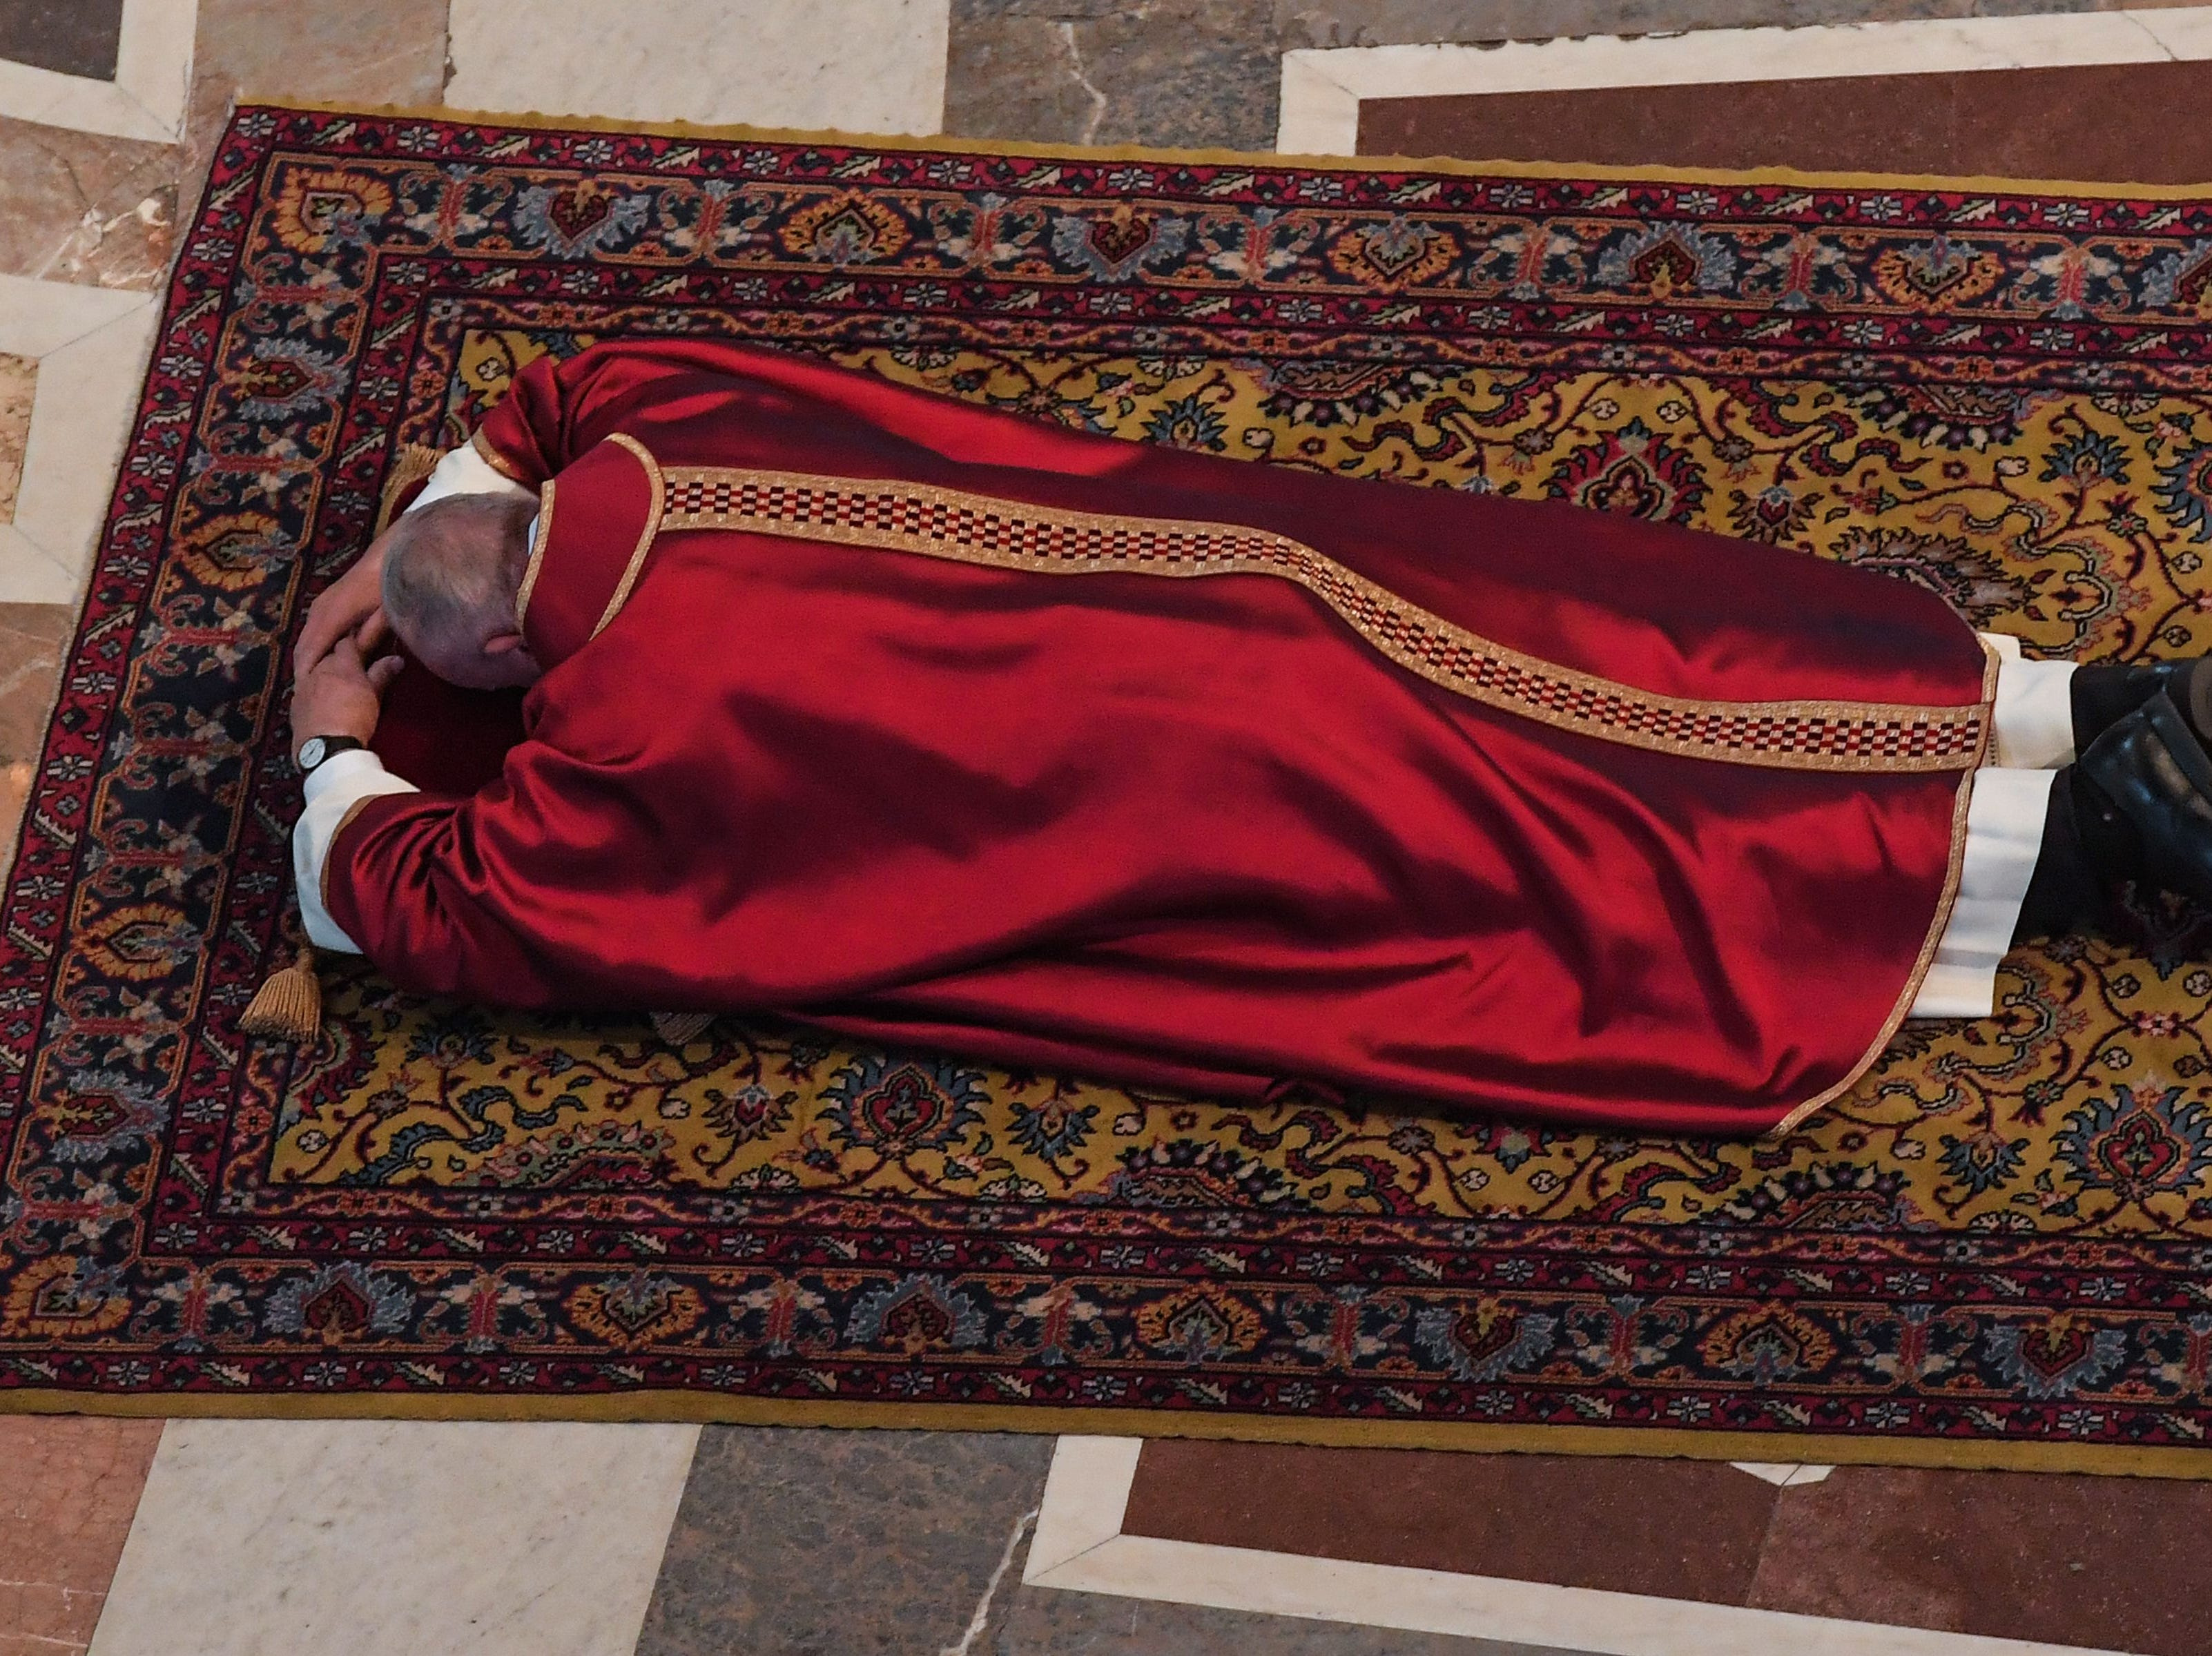 Pope Francis lies on the ground to pray during the Celebration of the Lord's Passion on Good Friday at St Peter's Basilica, on April 19, 2019 in the Vatican. - Christians around the world are marking the Holy Week, commemorating the crucifixion of Jesus Christ, leading up to his resurrection on Easter. (Photo by Tiziana FABI / POOL / AFP)        (Photo credit should read TIZIANA FABI/AFP/Getty Images)